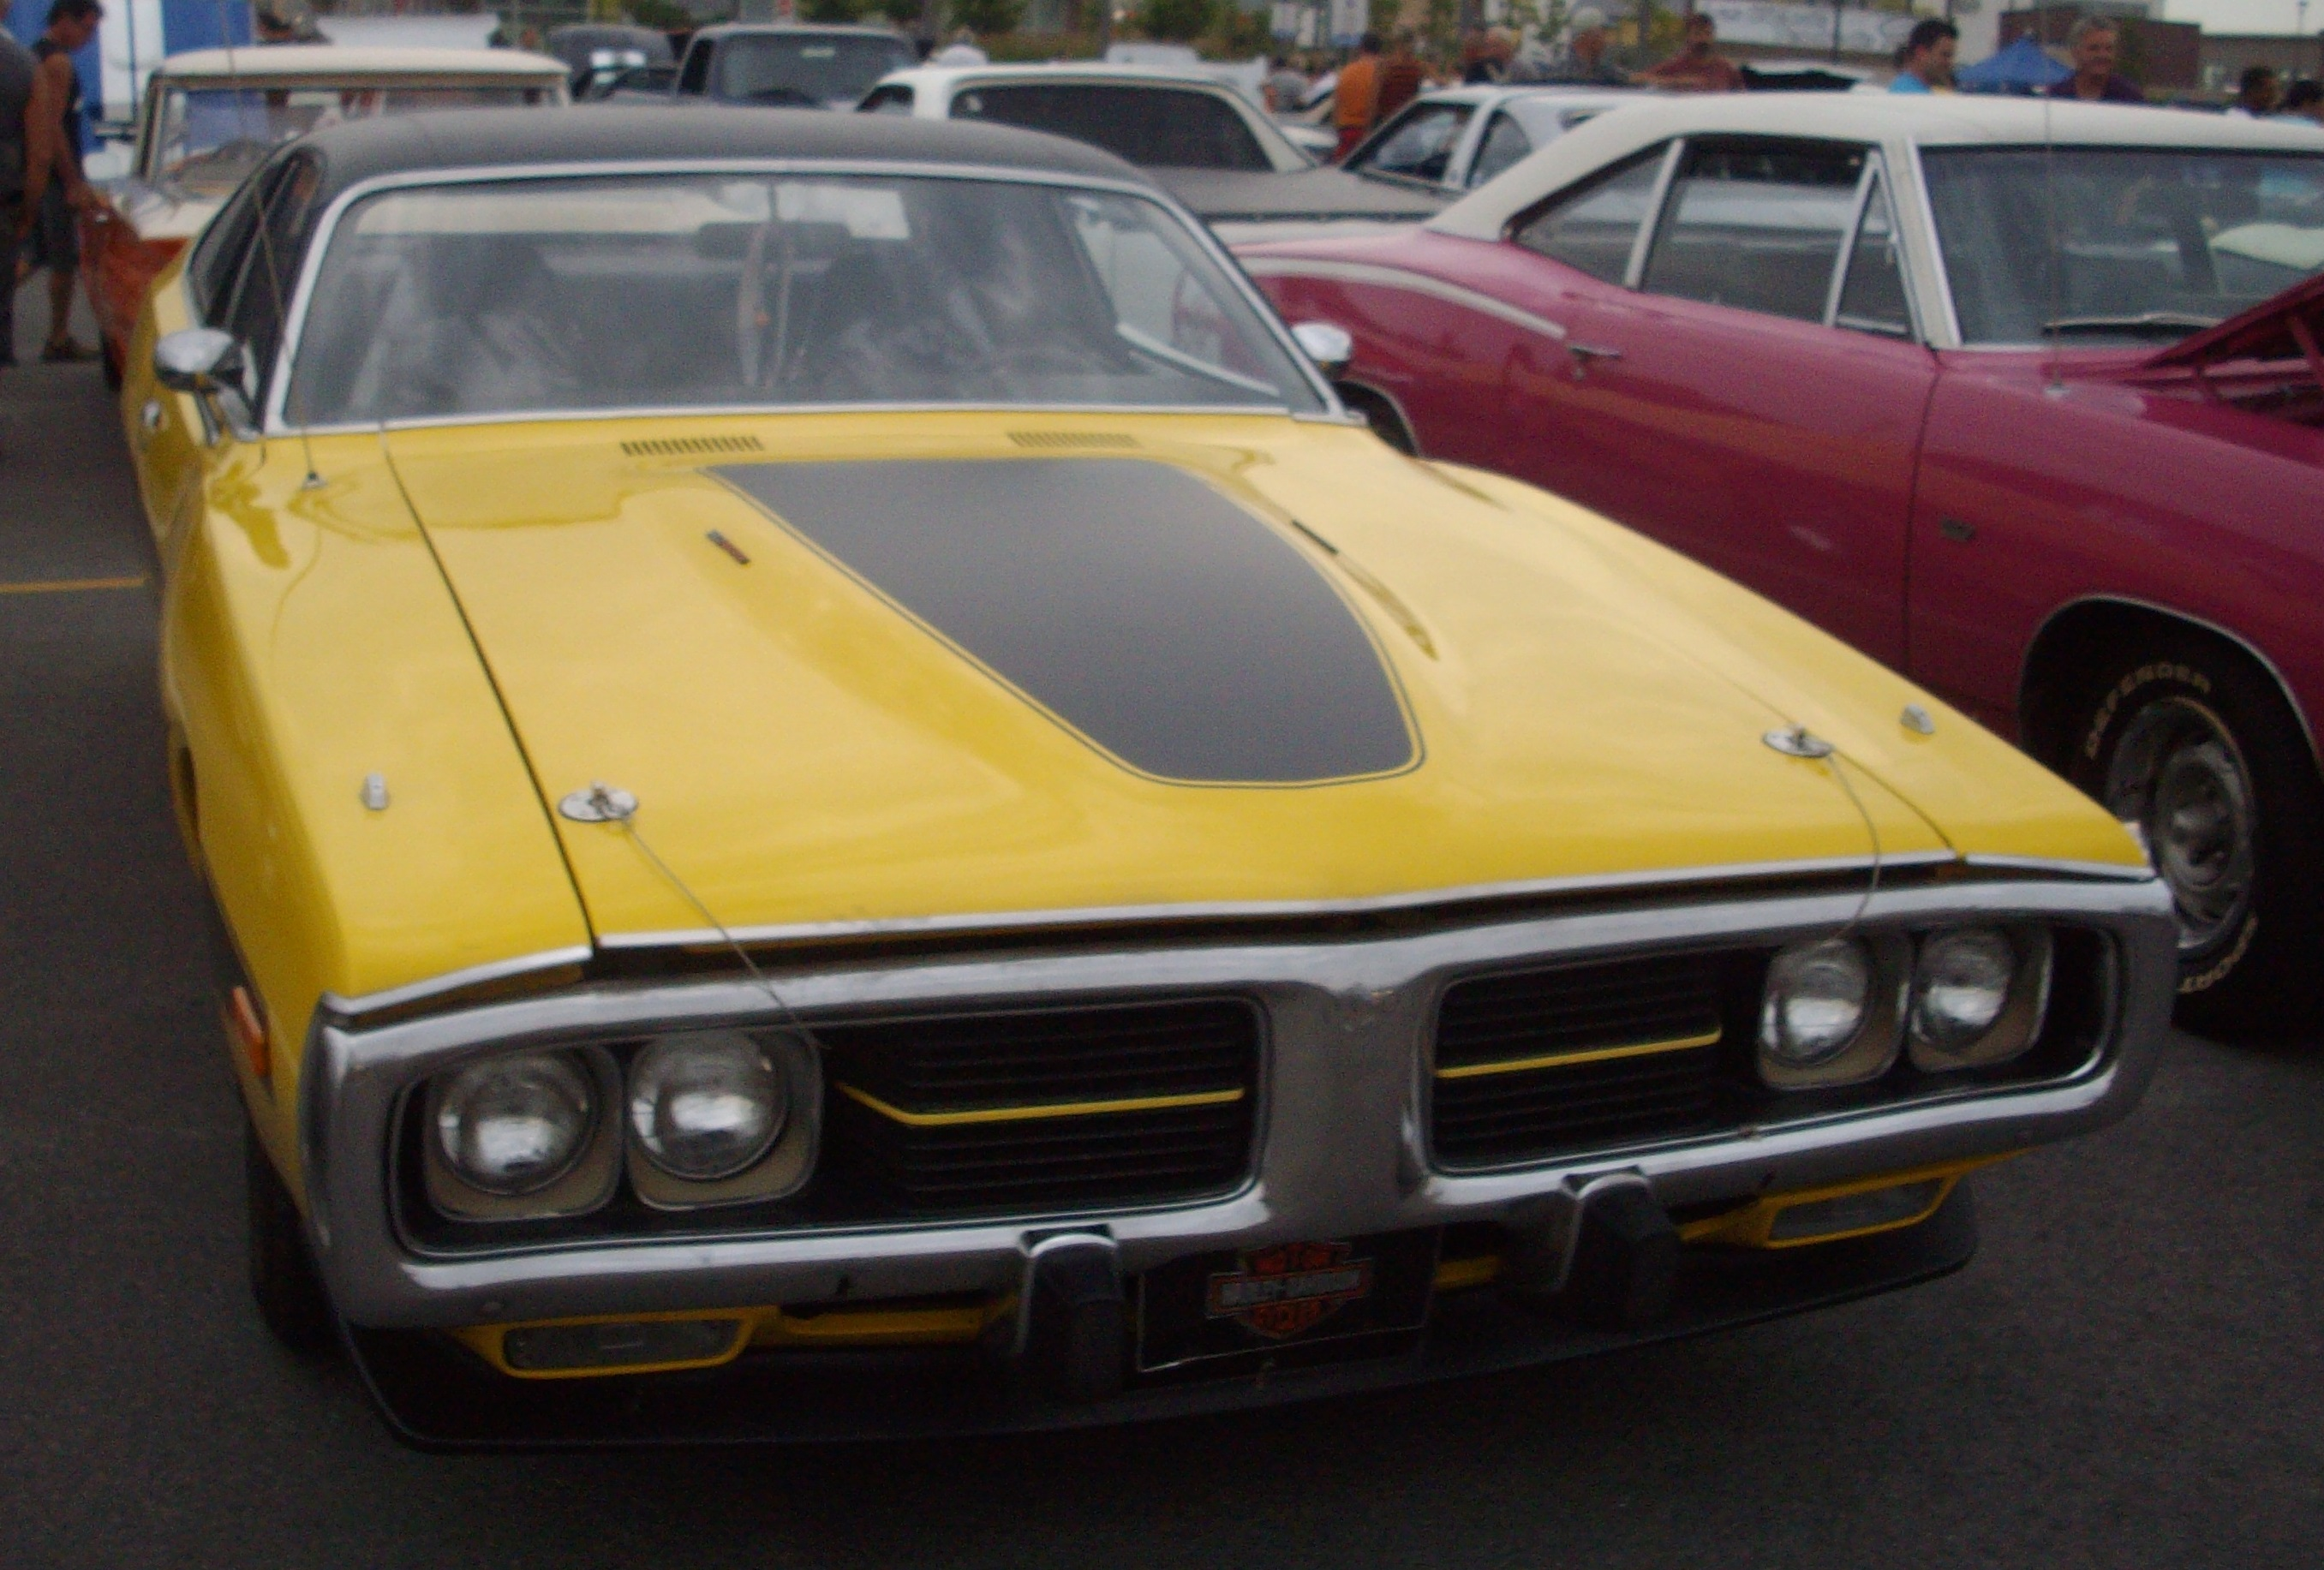 File73 Dodge Charger Les chauds vendredis 12JPG  Wikimedia